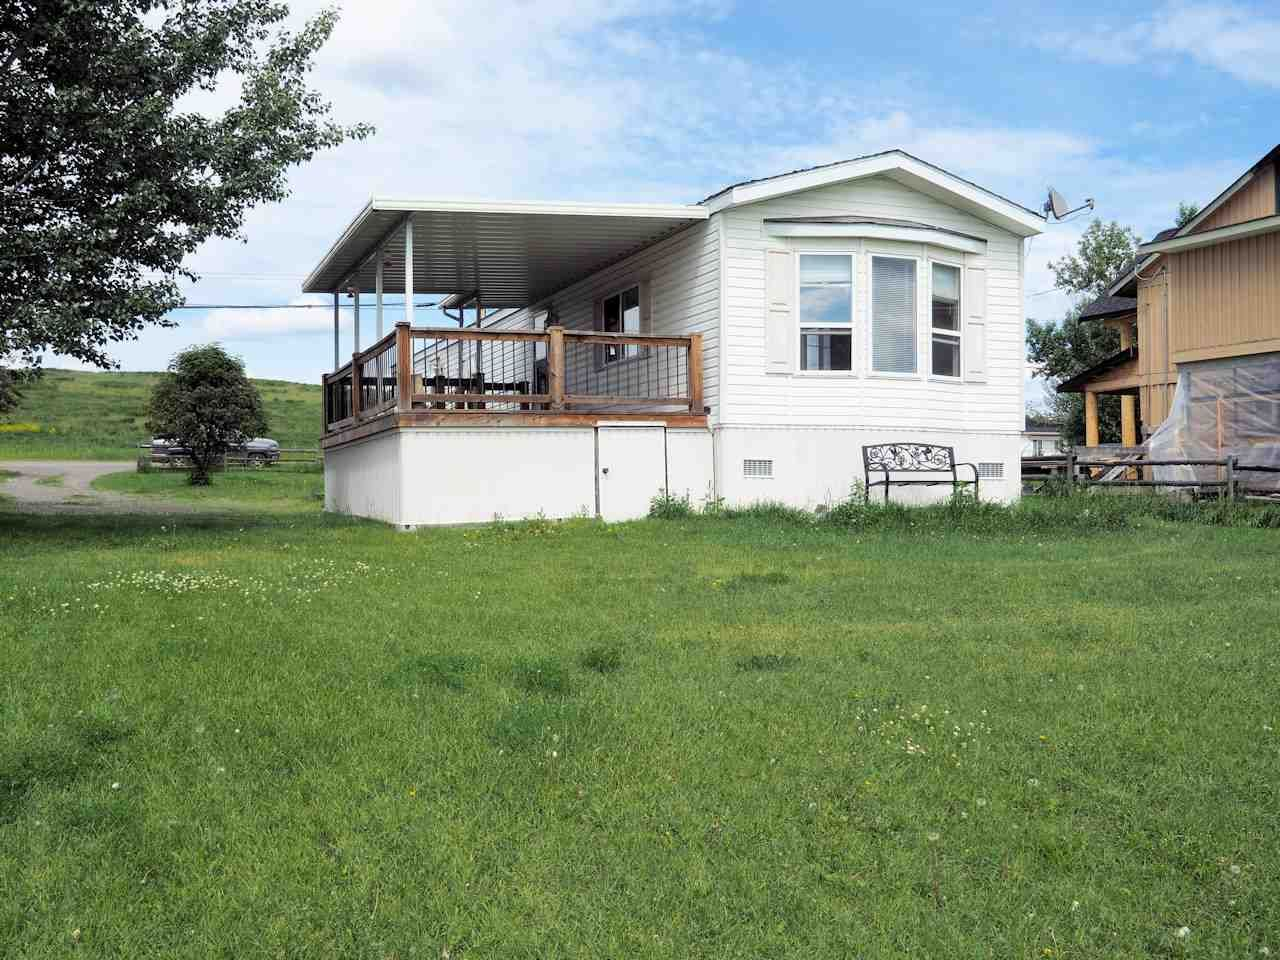 Main Photo: 5480 TATTON STATION Road in 100 Mile House: 108 Ranch Manufactured Home for sale (100 Mile House (Zone 10))  : MLS®# R2468828